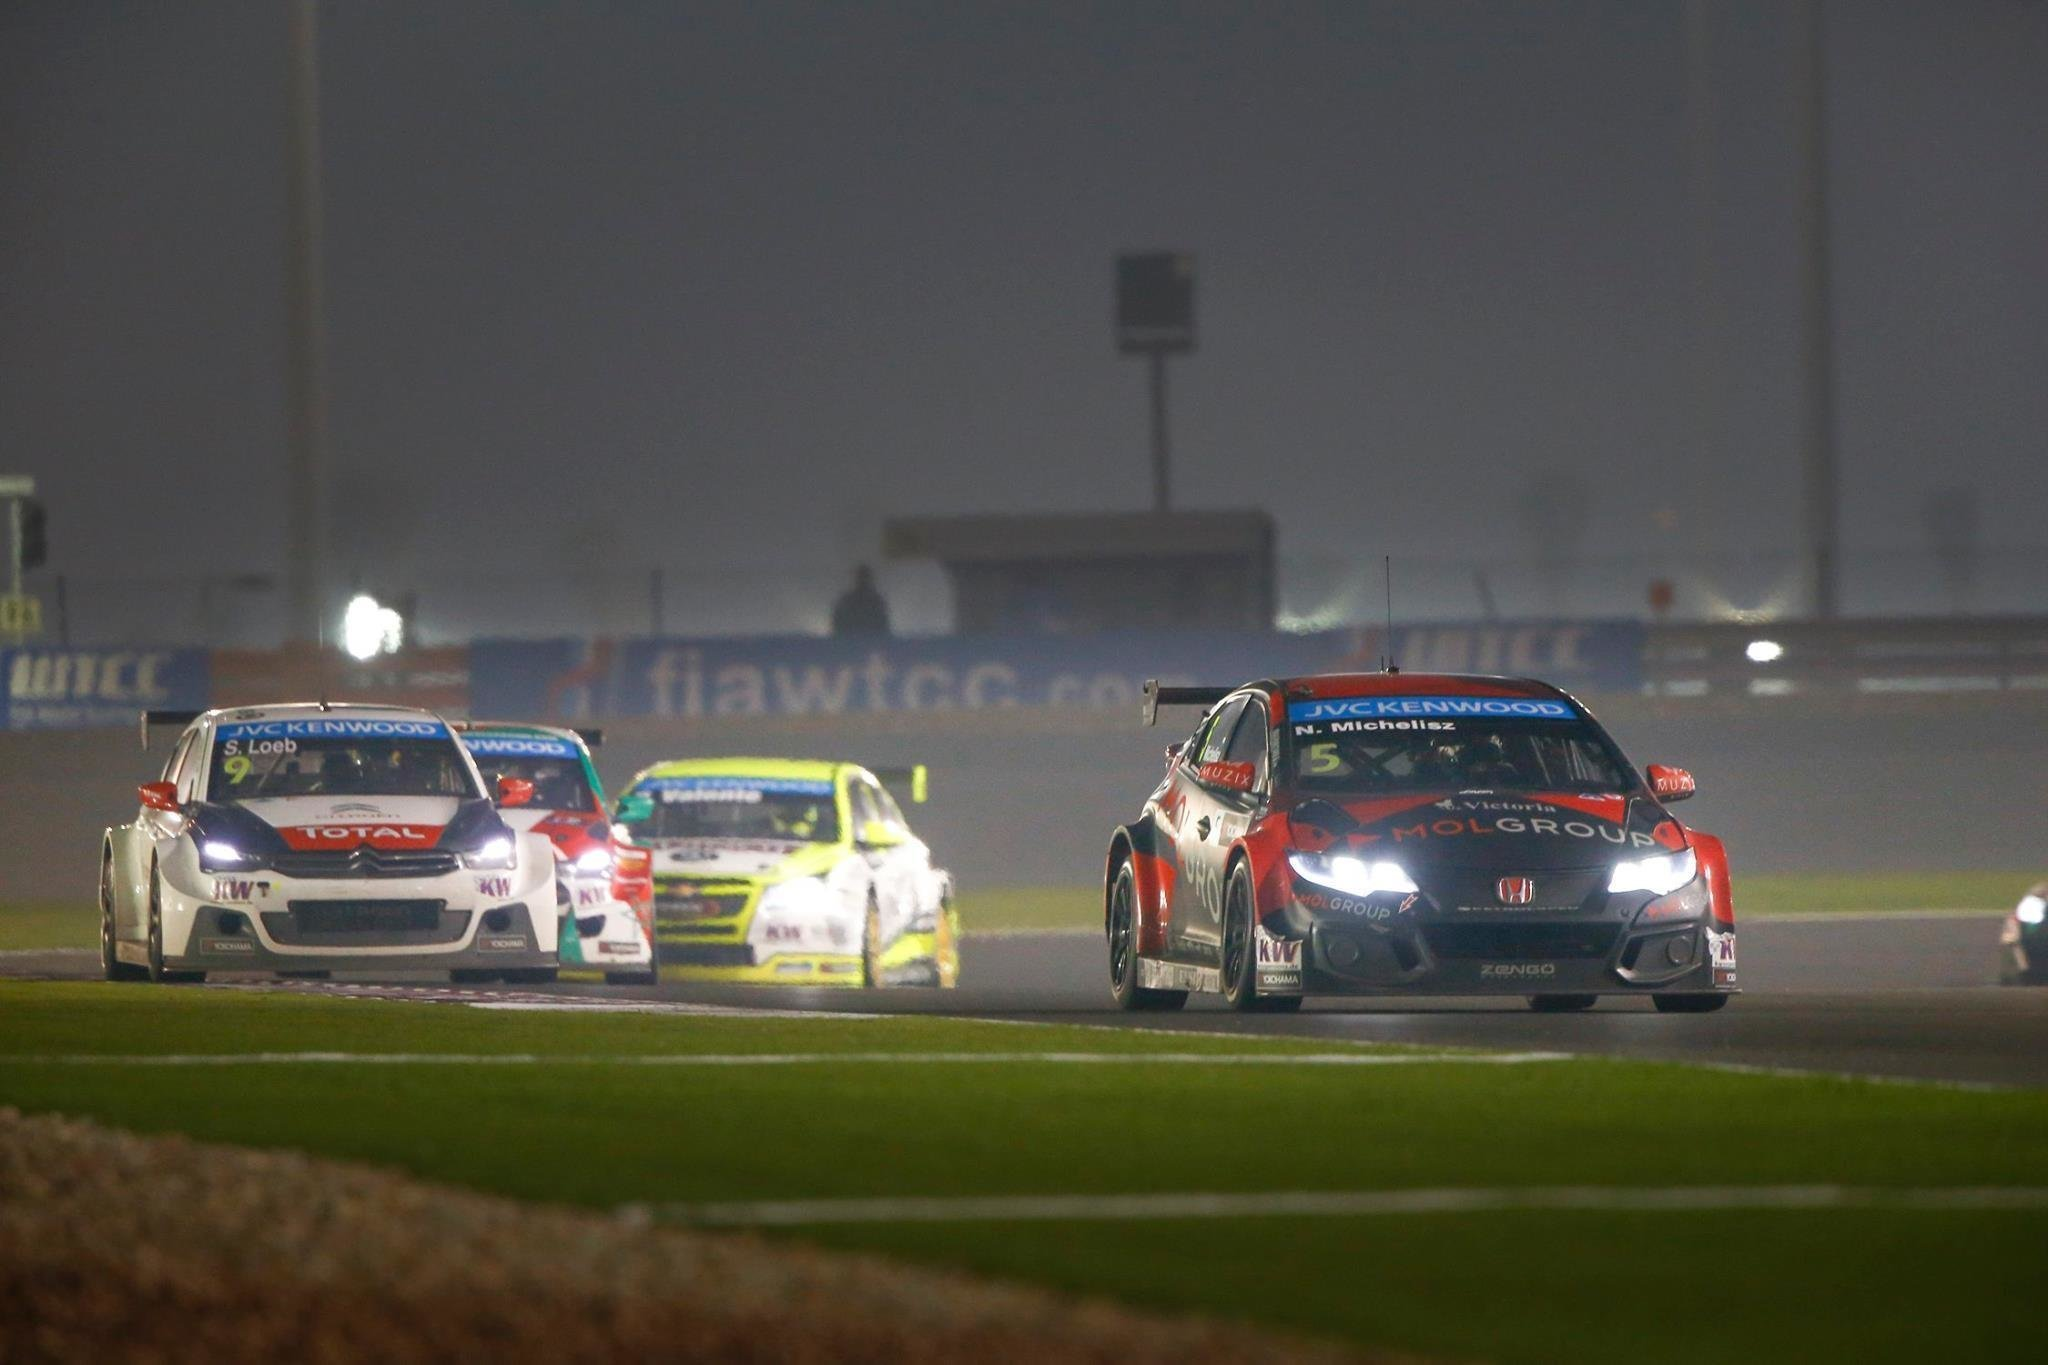 FIA WTCC, Race of Qatar: Hungarian Michelisz takes independent title in night-time thriller